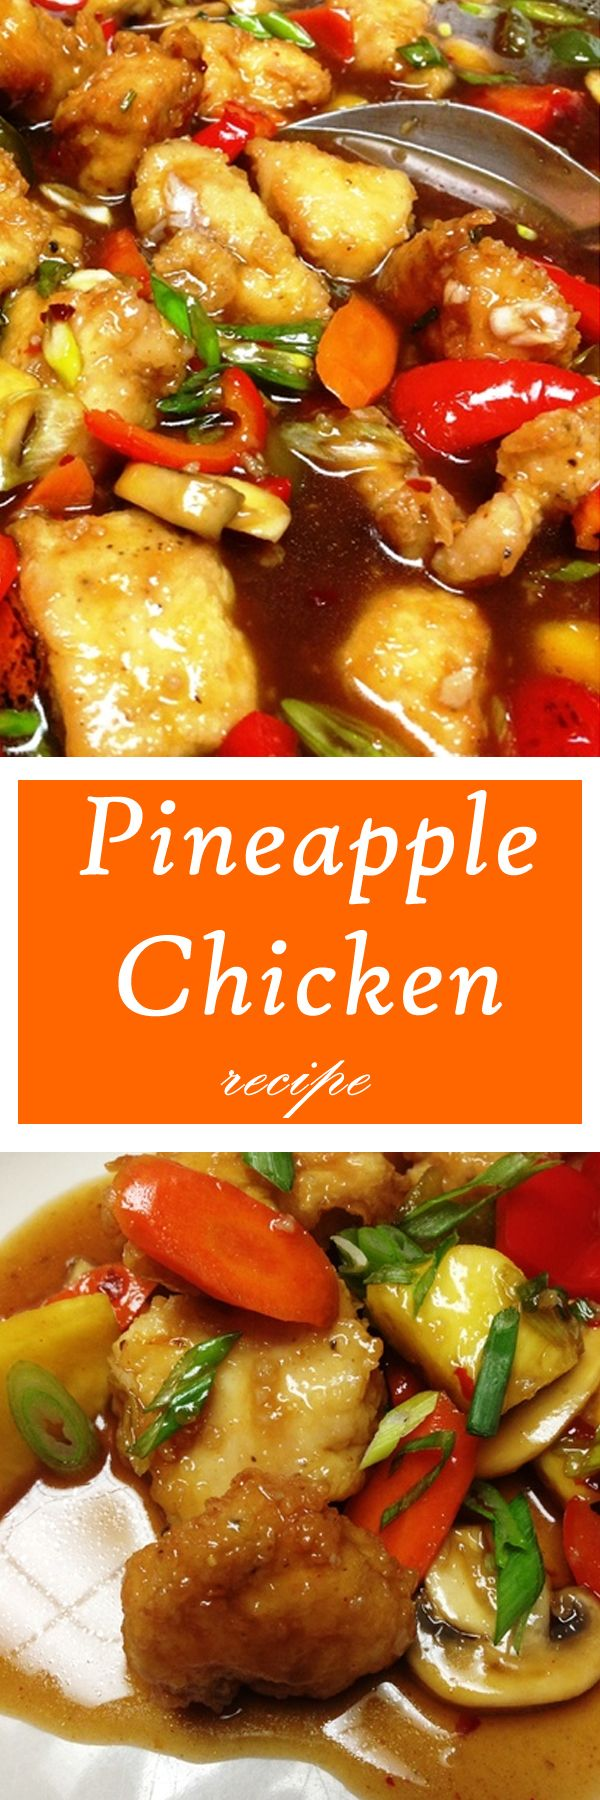 This Pineapple Chicken recipe was a sure hit in our home! Family absolutely loved it. The sauce is so yummy!